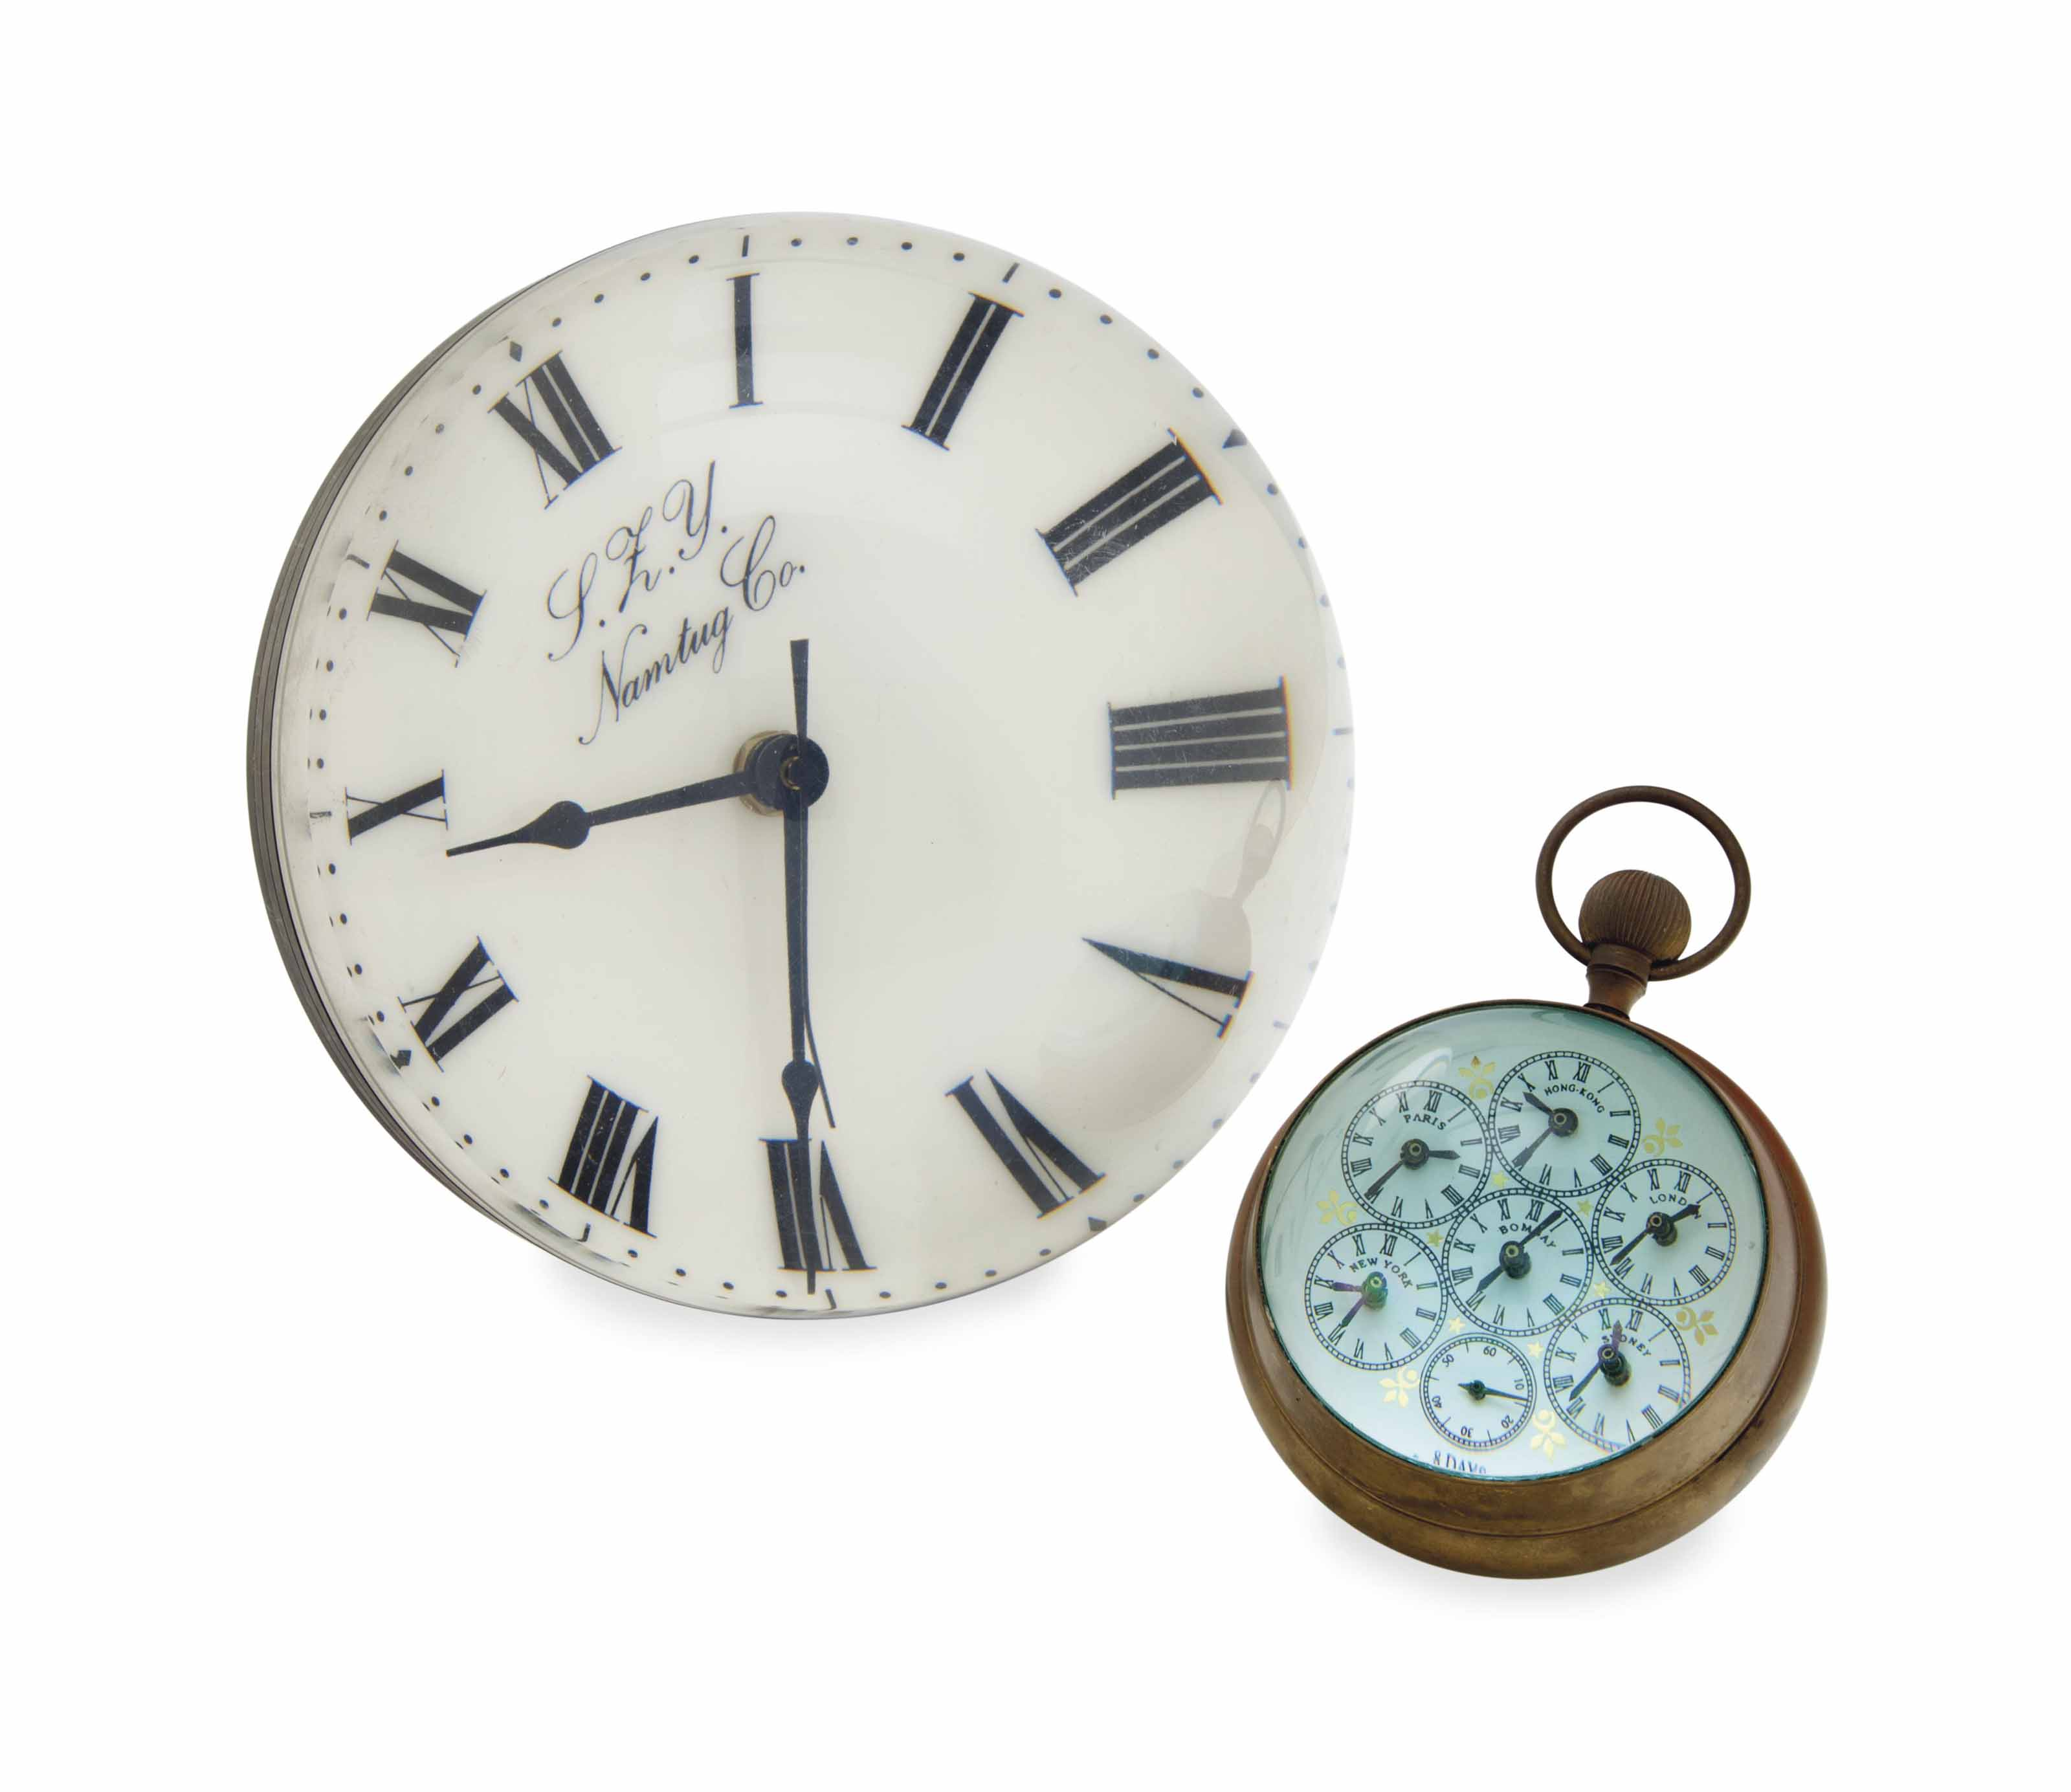 TWO BALL-FORM TABLE CLOCKS,